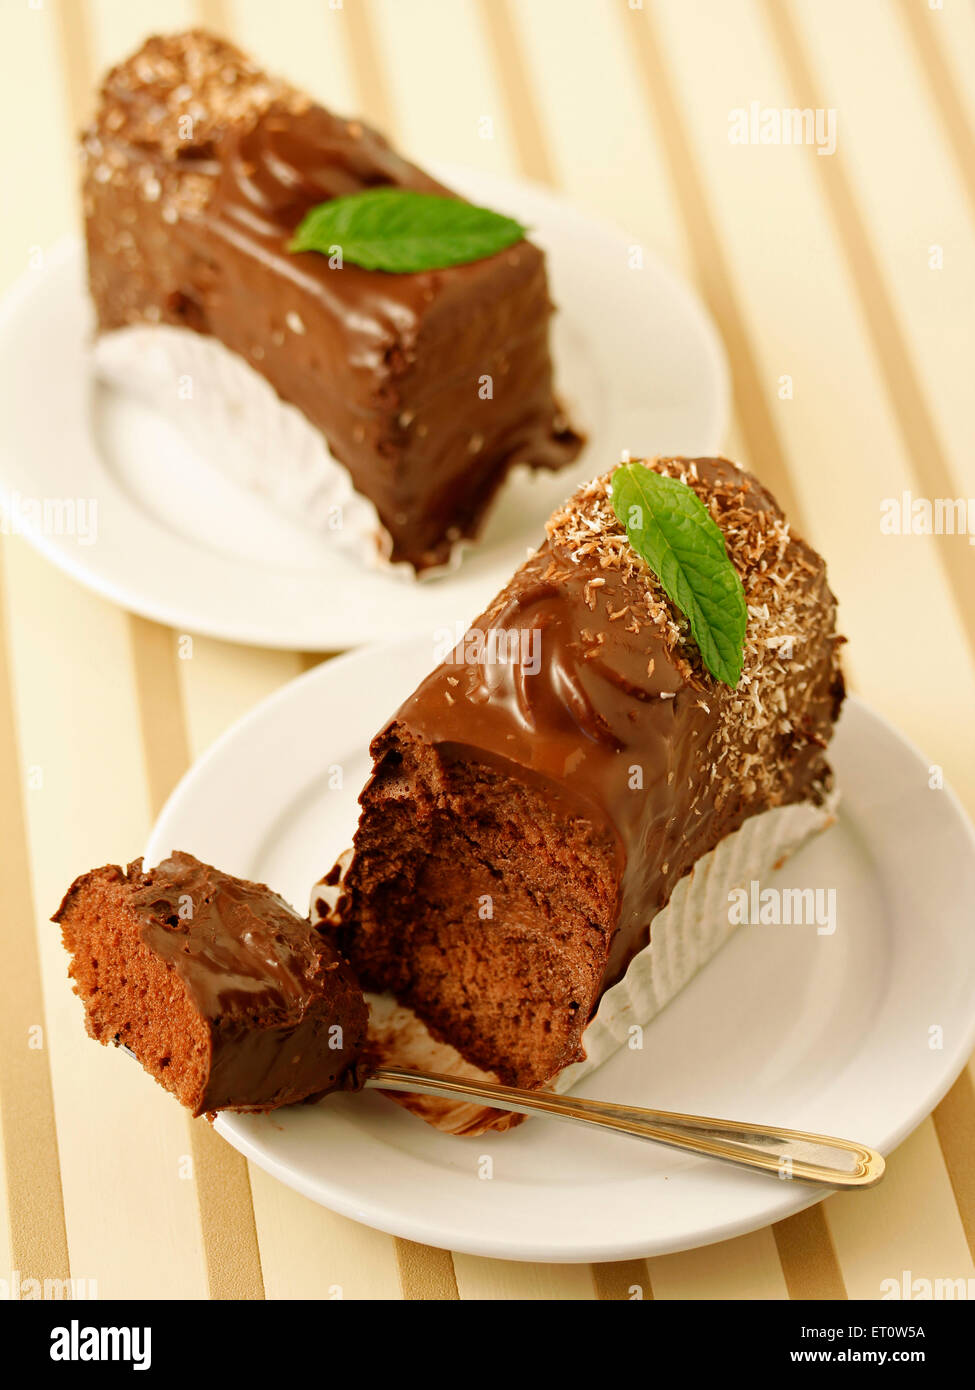 European Chocolate Sponge Cake